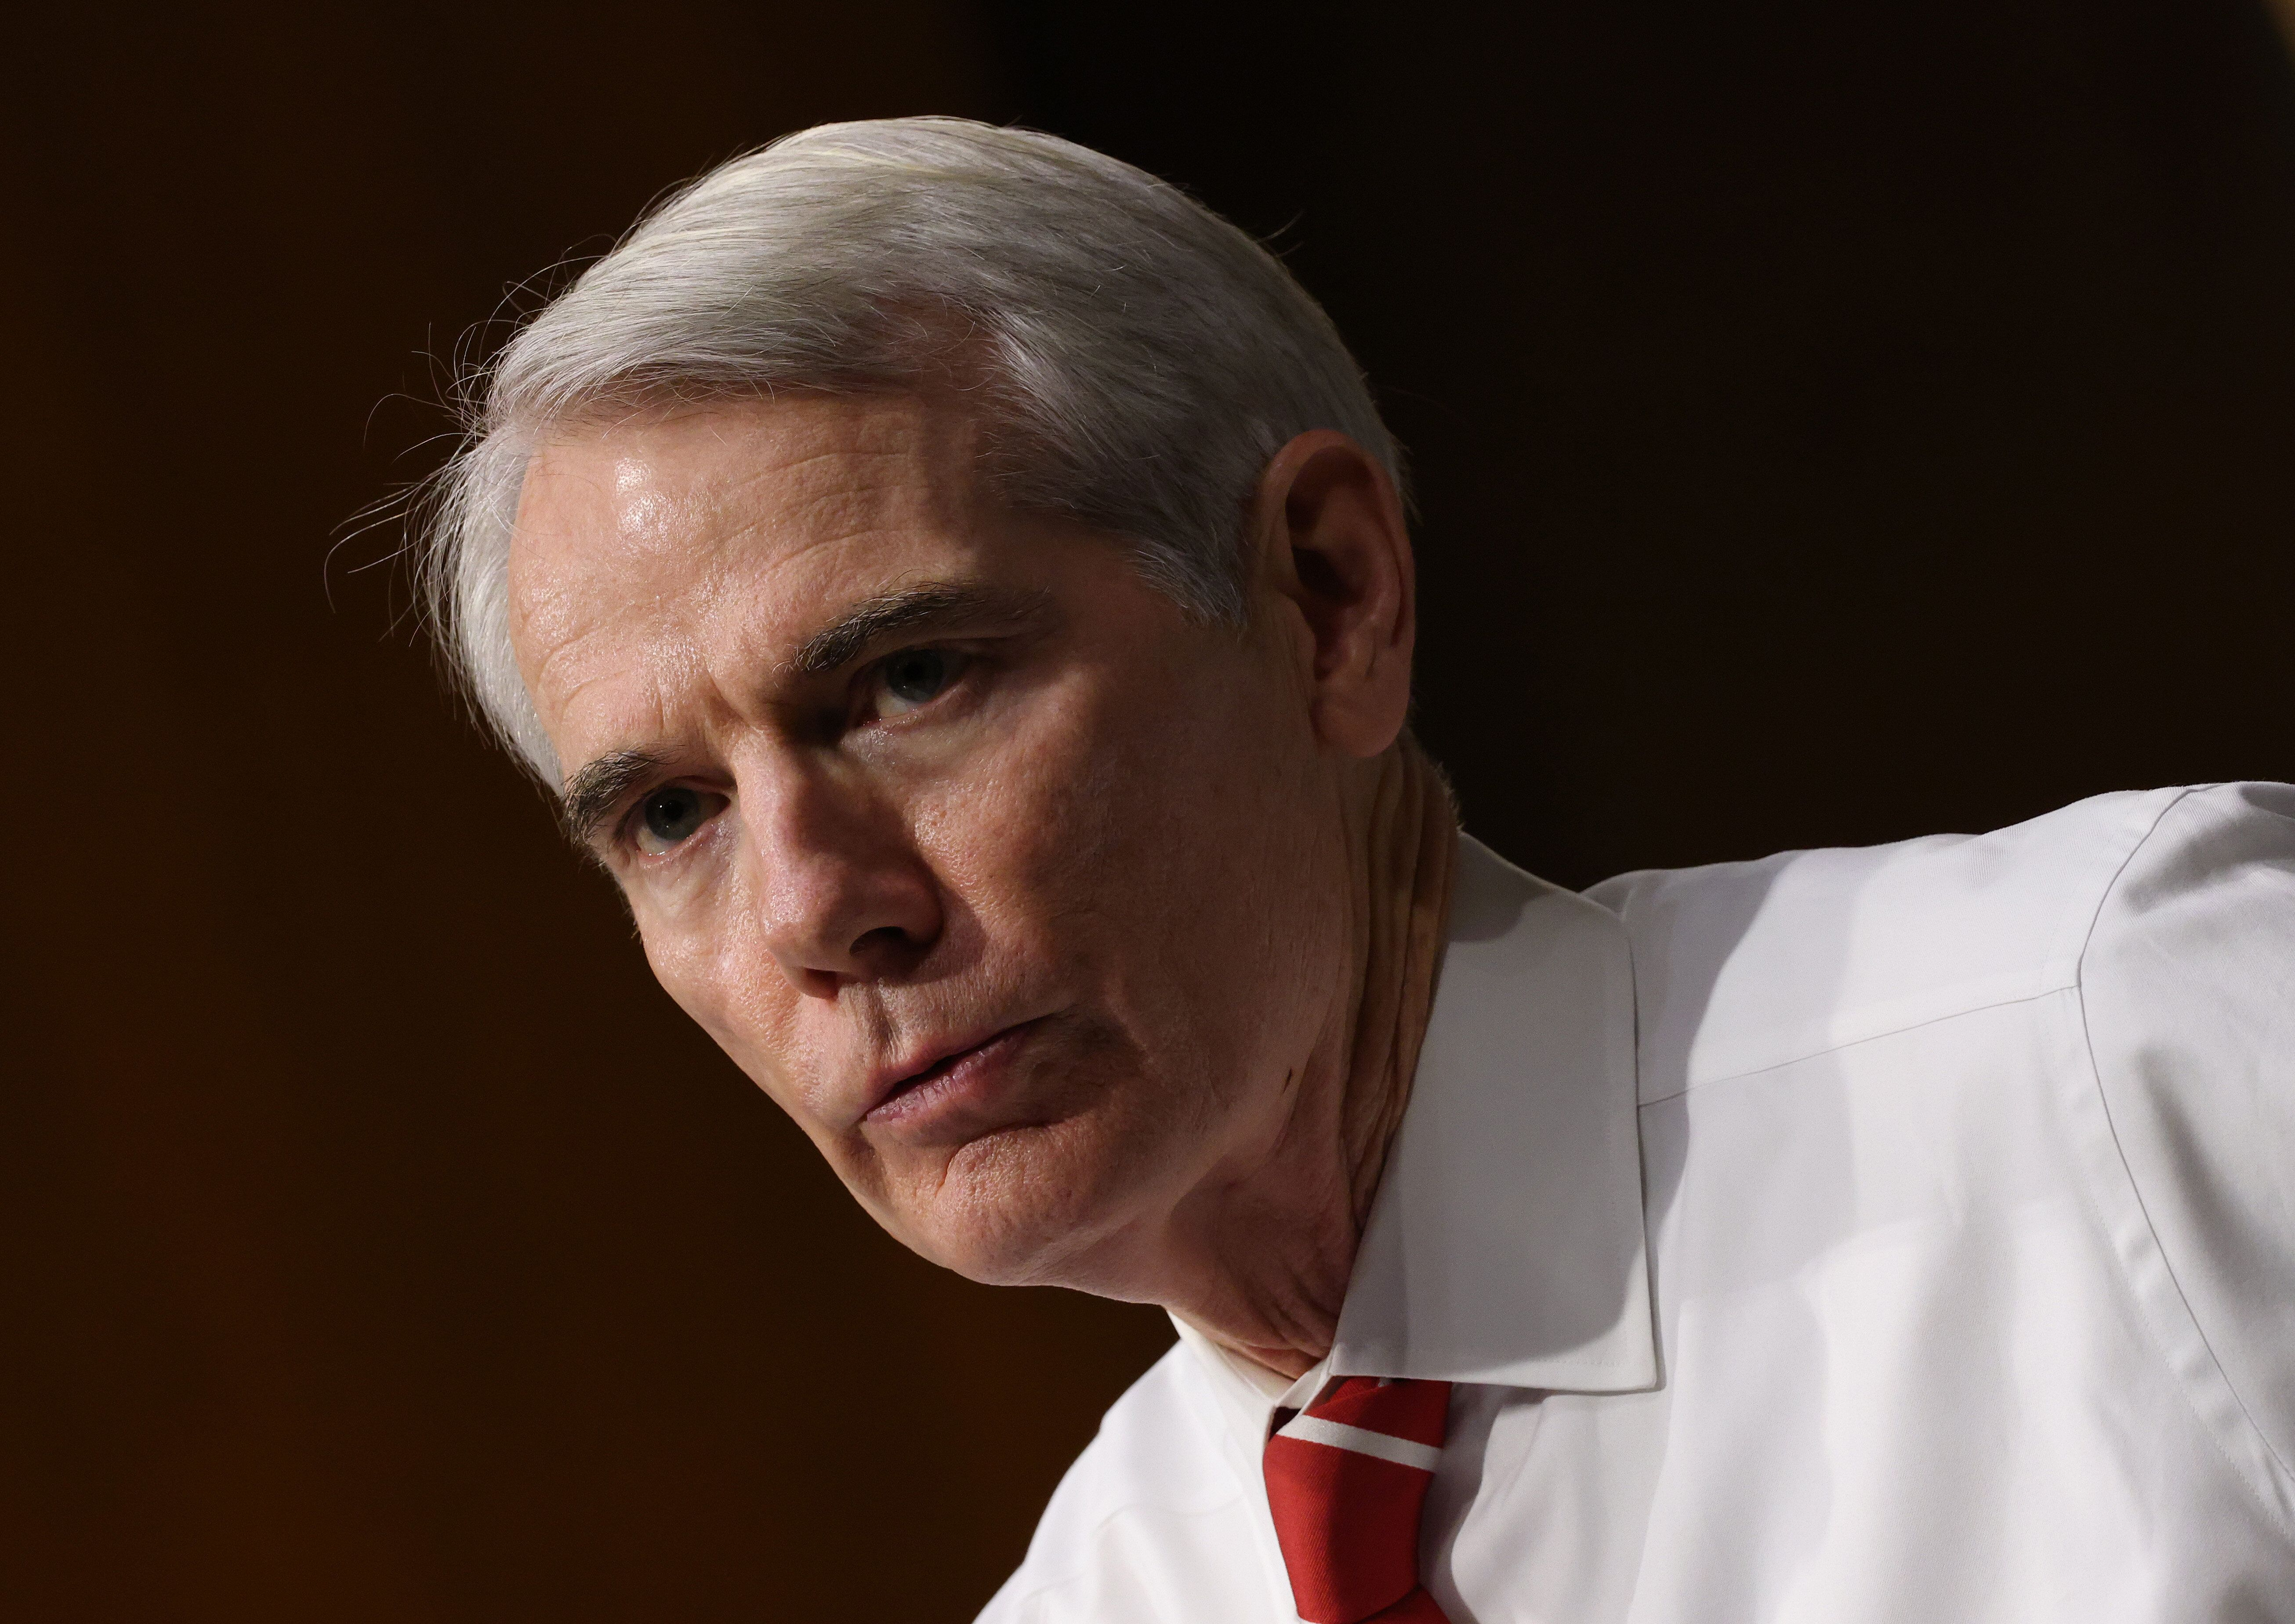 Sen. Rob Portman (R-Ohio) is part of the bipartisan group drafting the infrastructure bill.